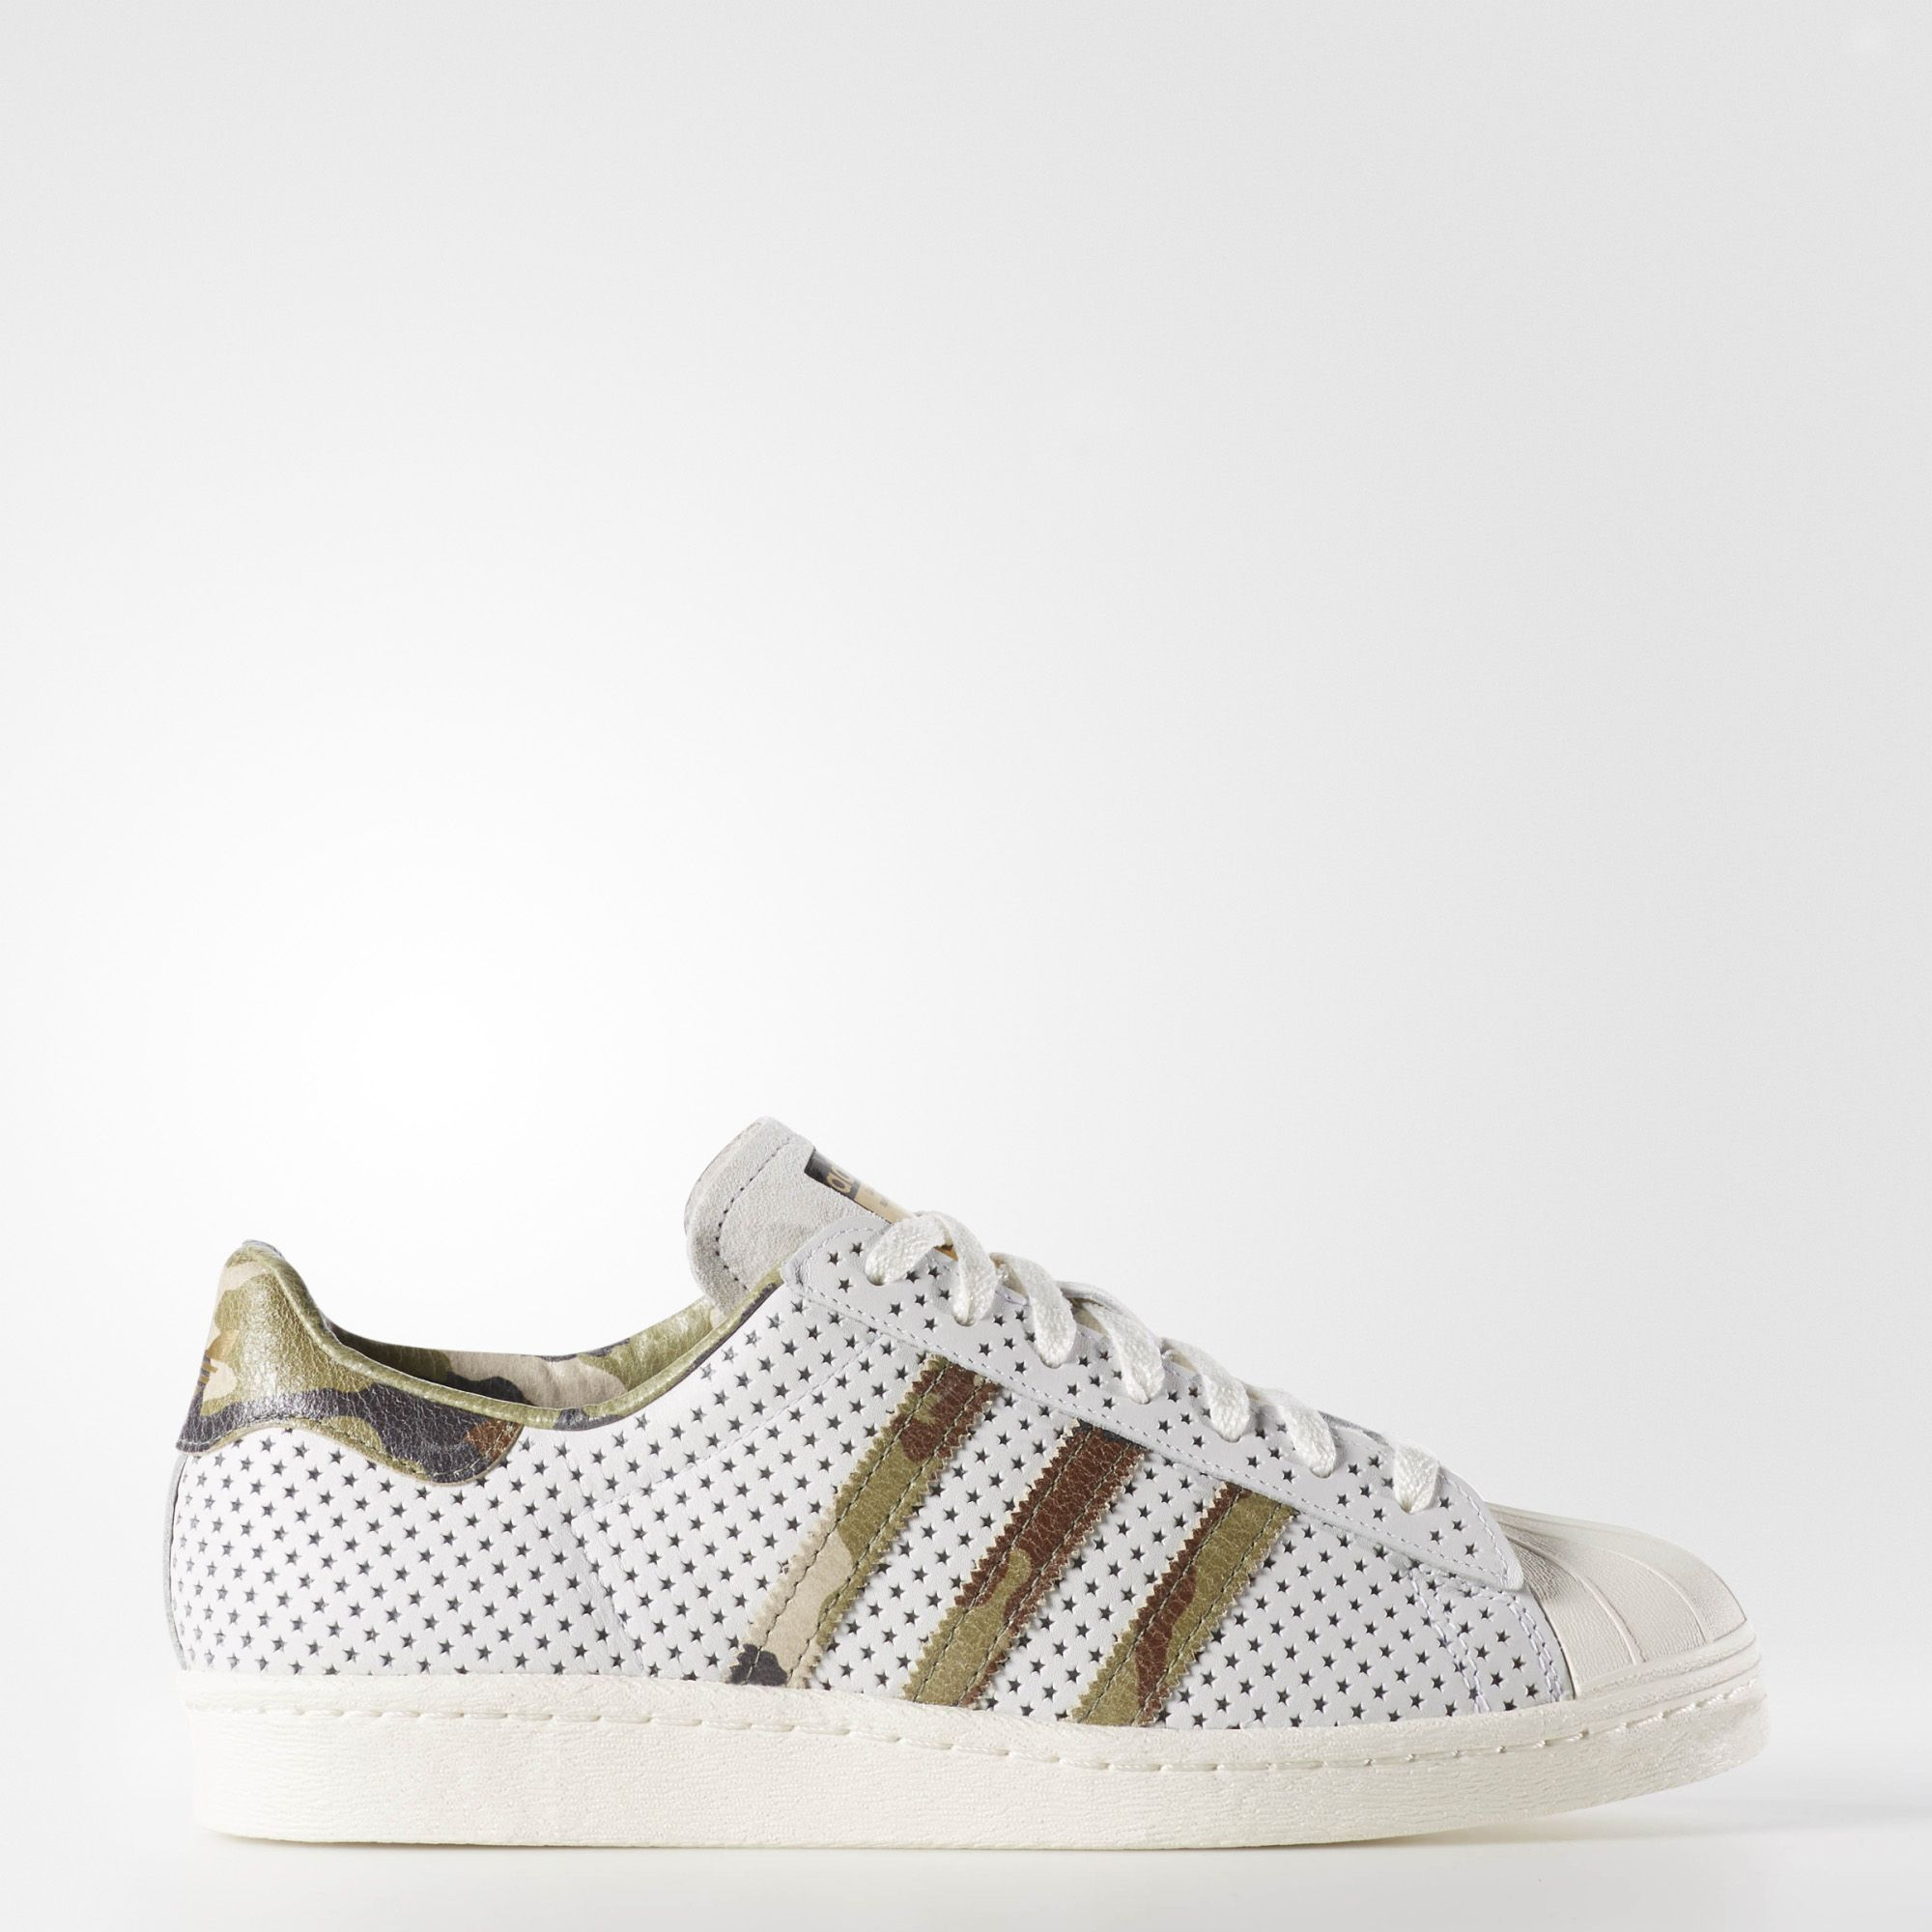 adidas superstar waves